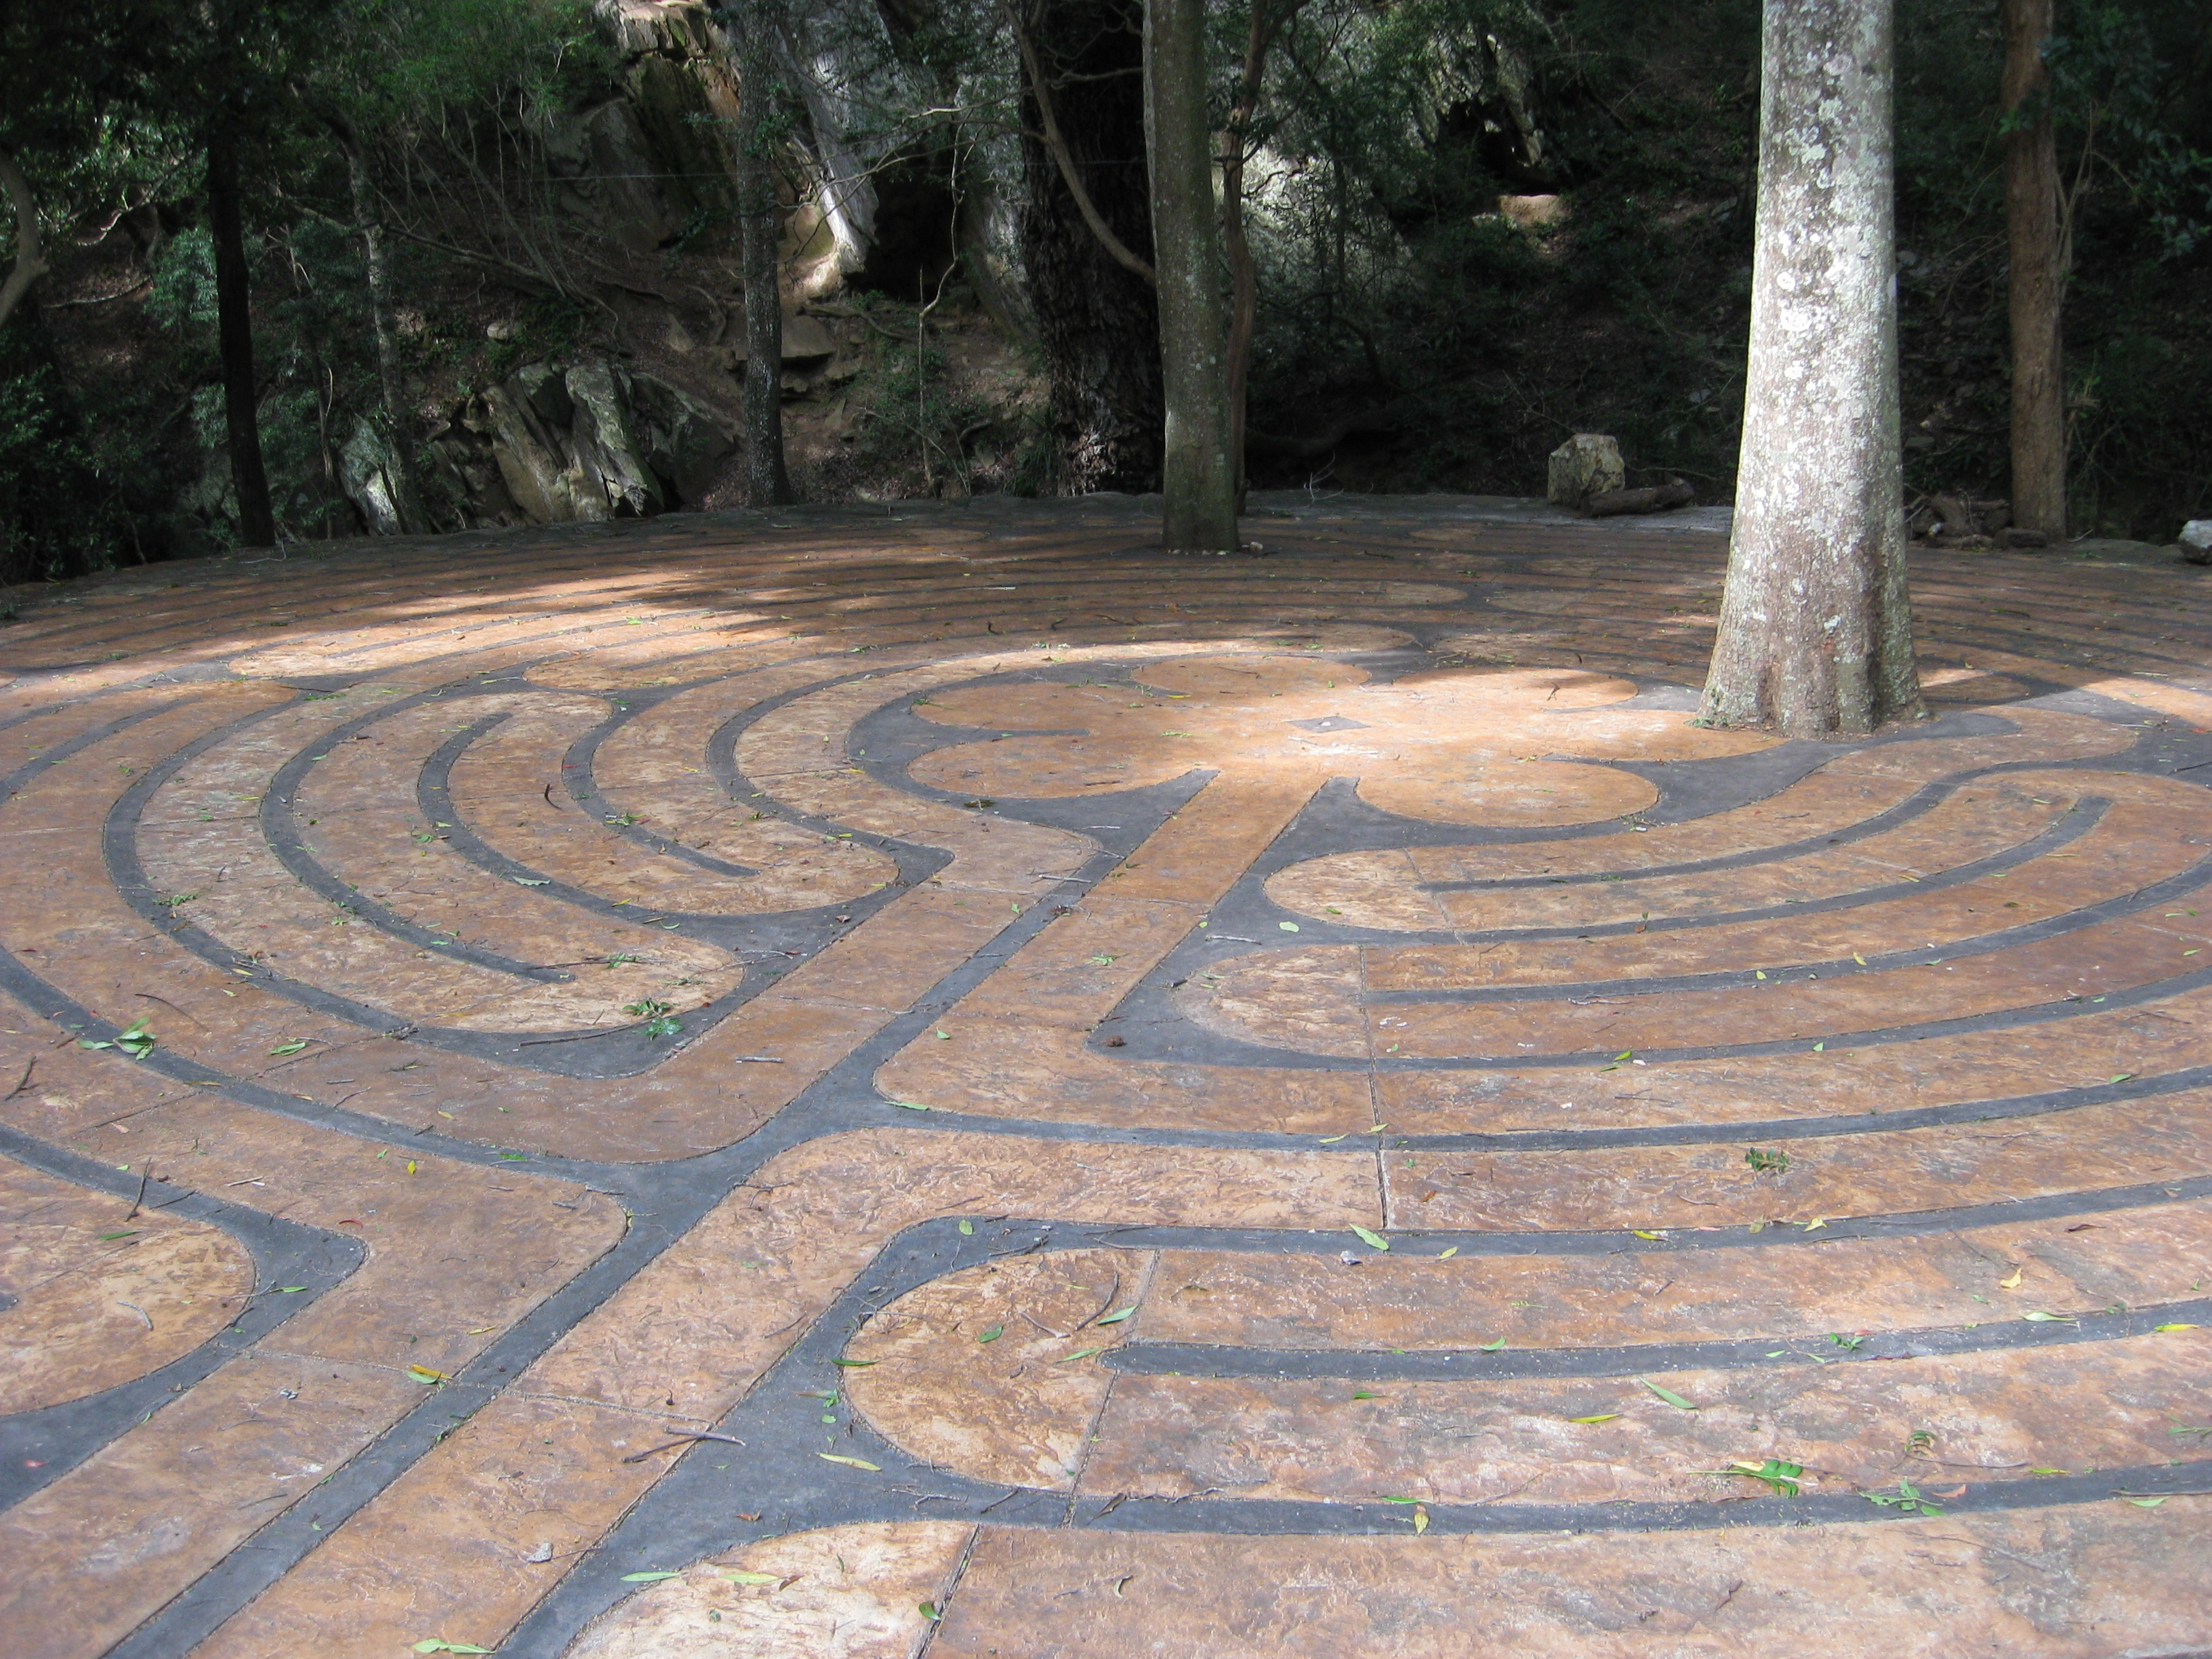 Boondocks Labyrinth, South Africa